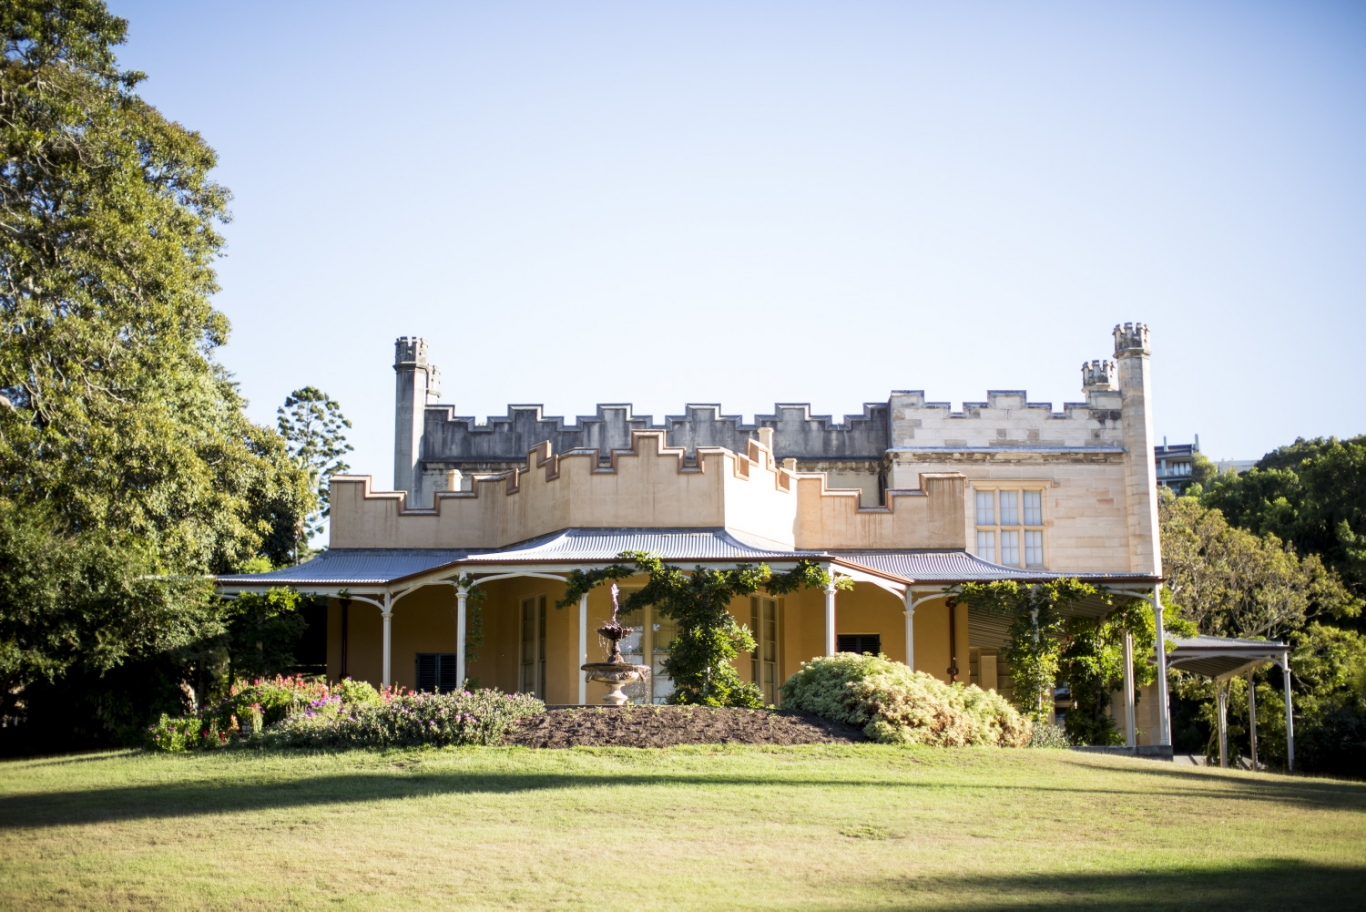 View across lawn to house with crenellated facade and verandah.